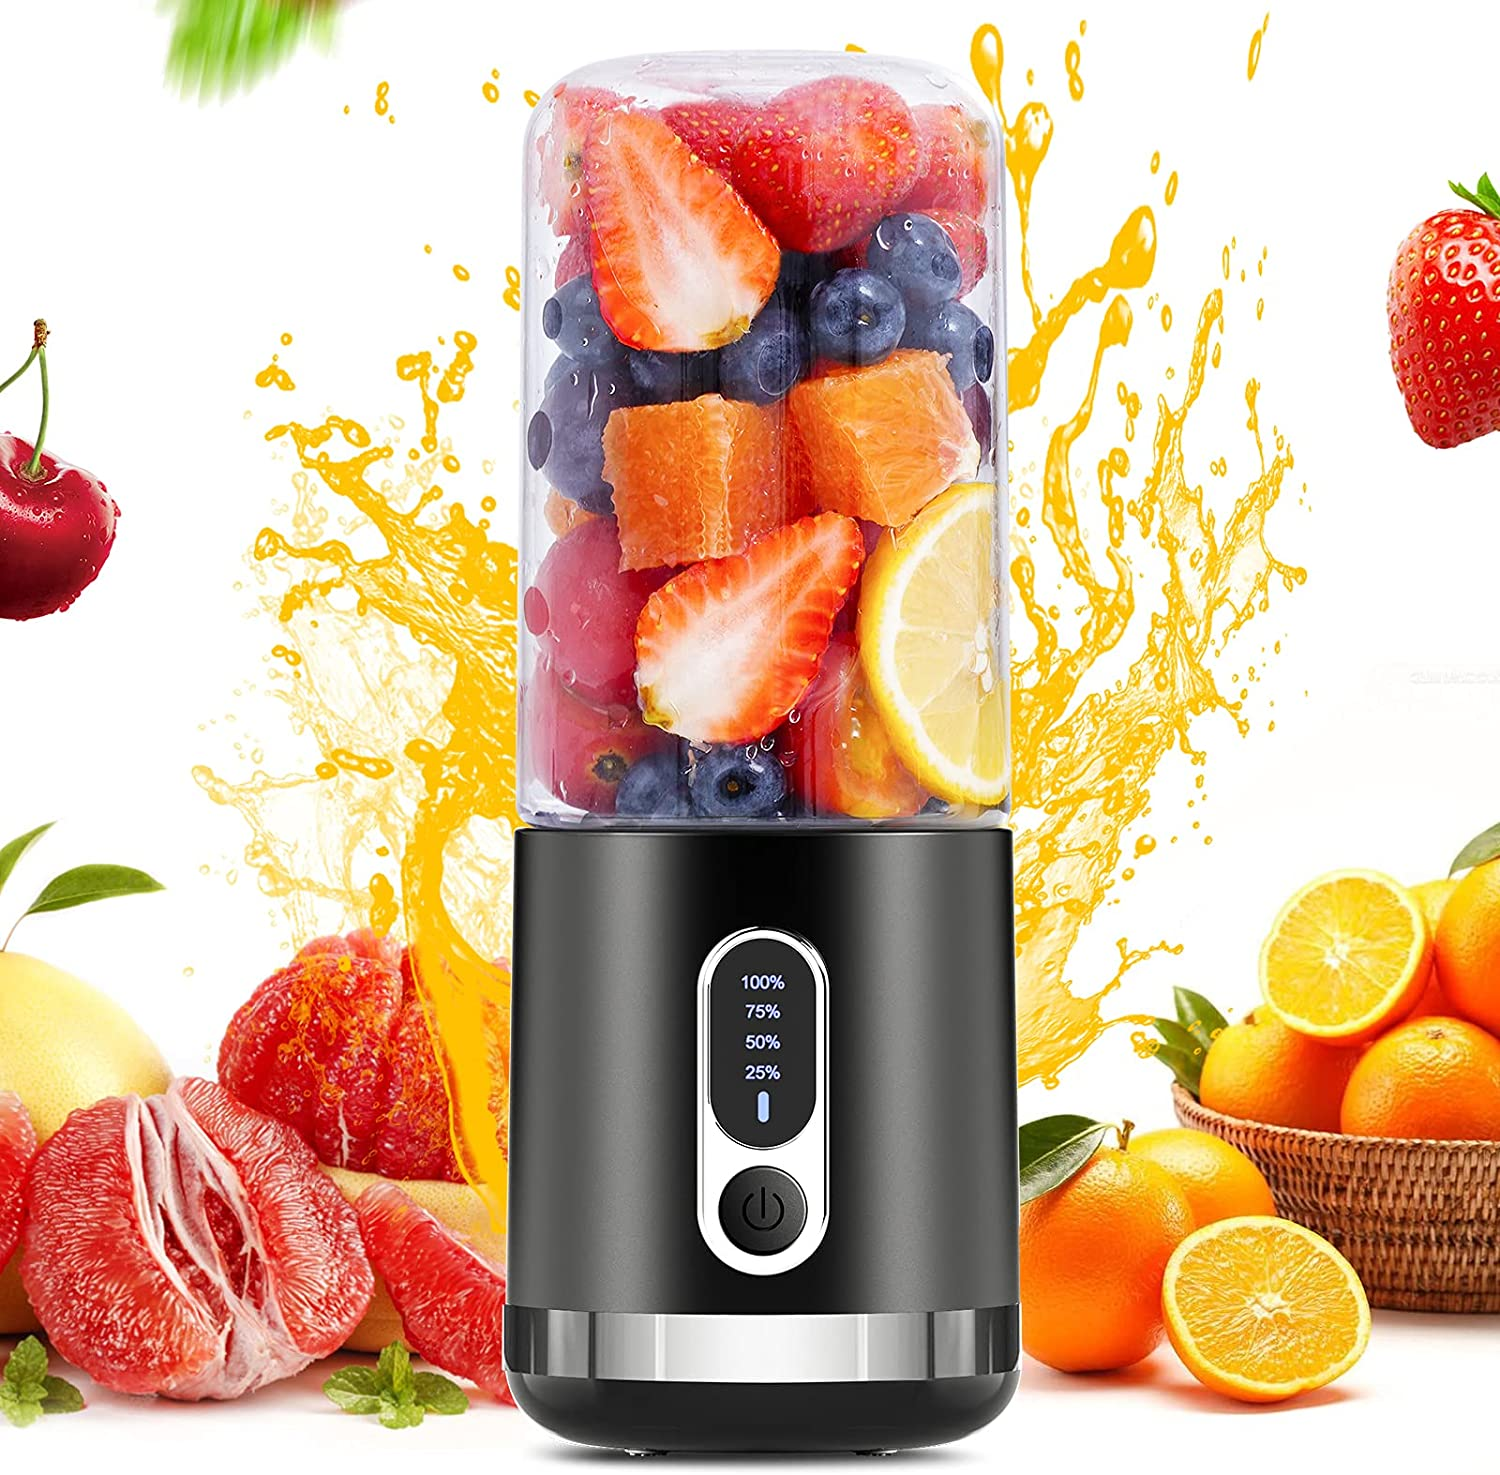 Portable Blender, Togala Personal Blender, 15.2 Oz Fruit Mixer Blender for Kitchen Travel Office, 4000mAh USB-C Rechargeable Mini Blender with Six Blades for Smoothies Shakes and Juice (2021 Black)